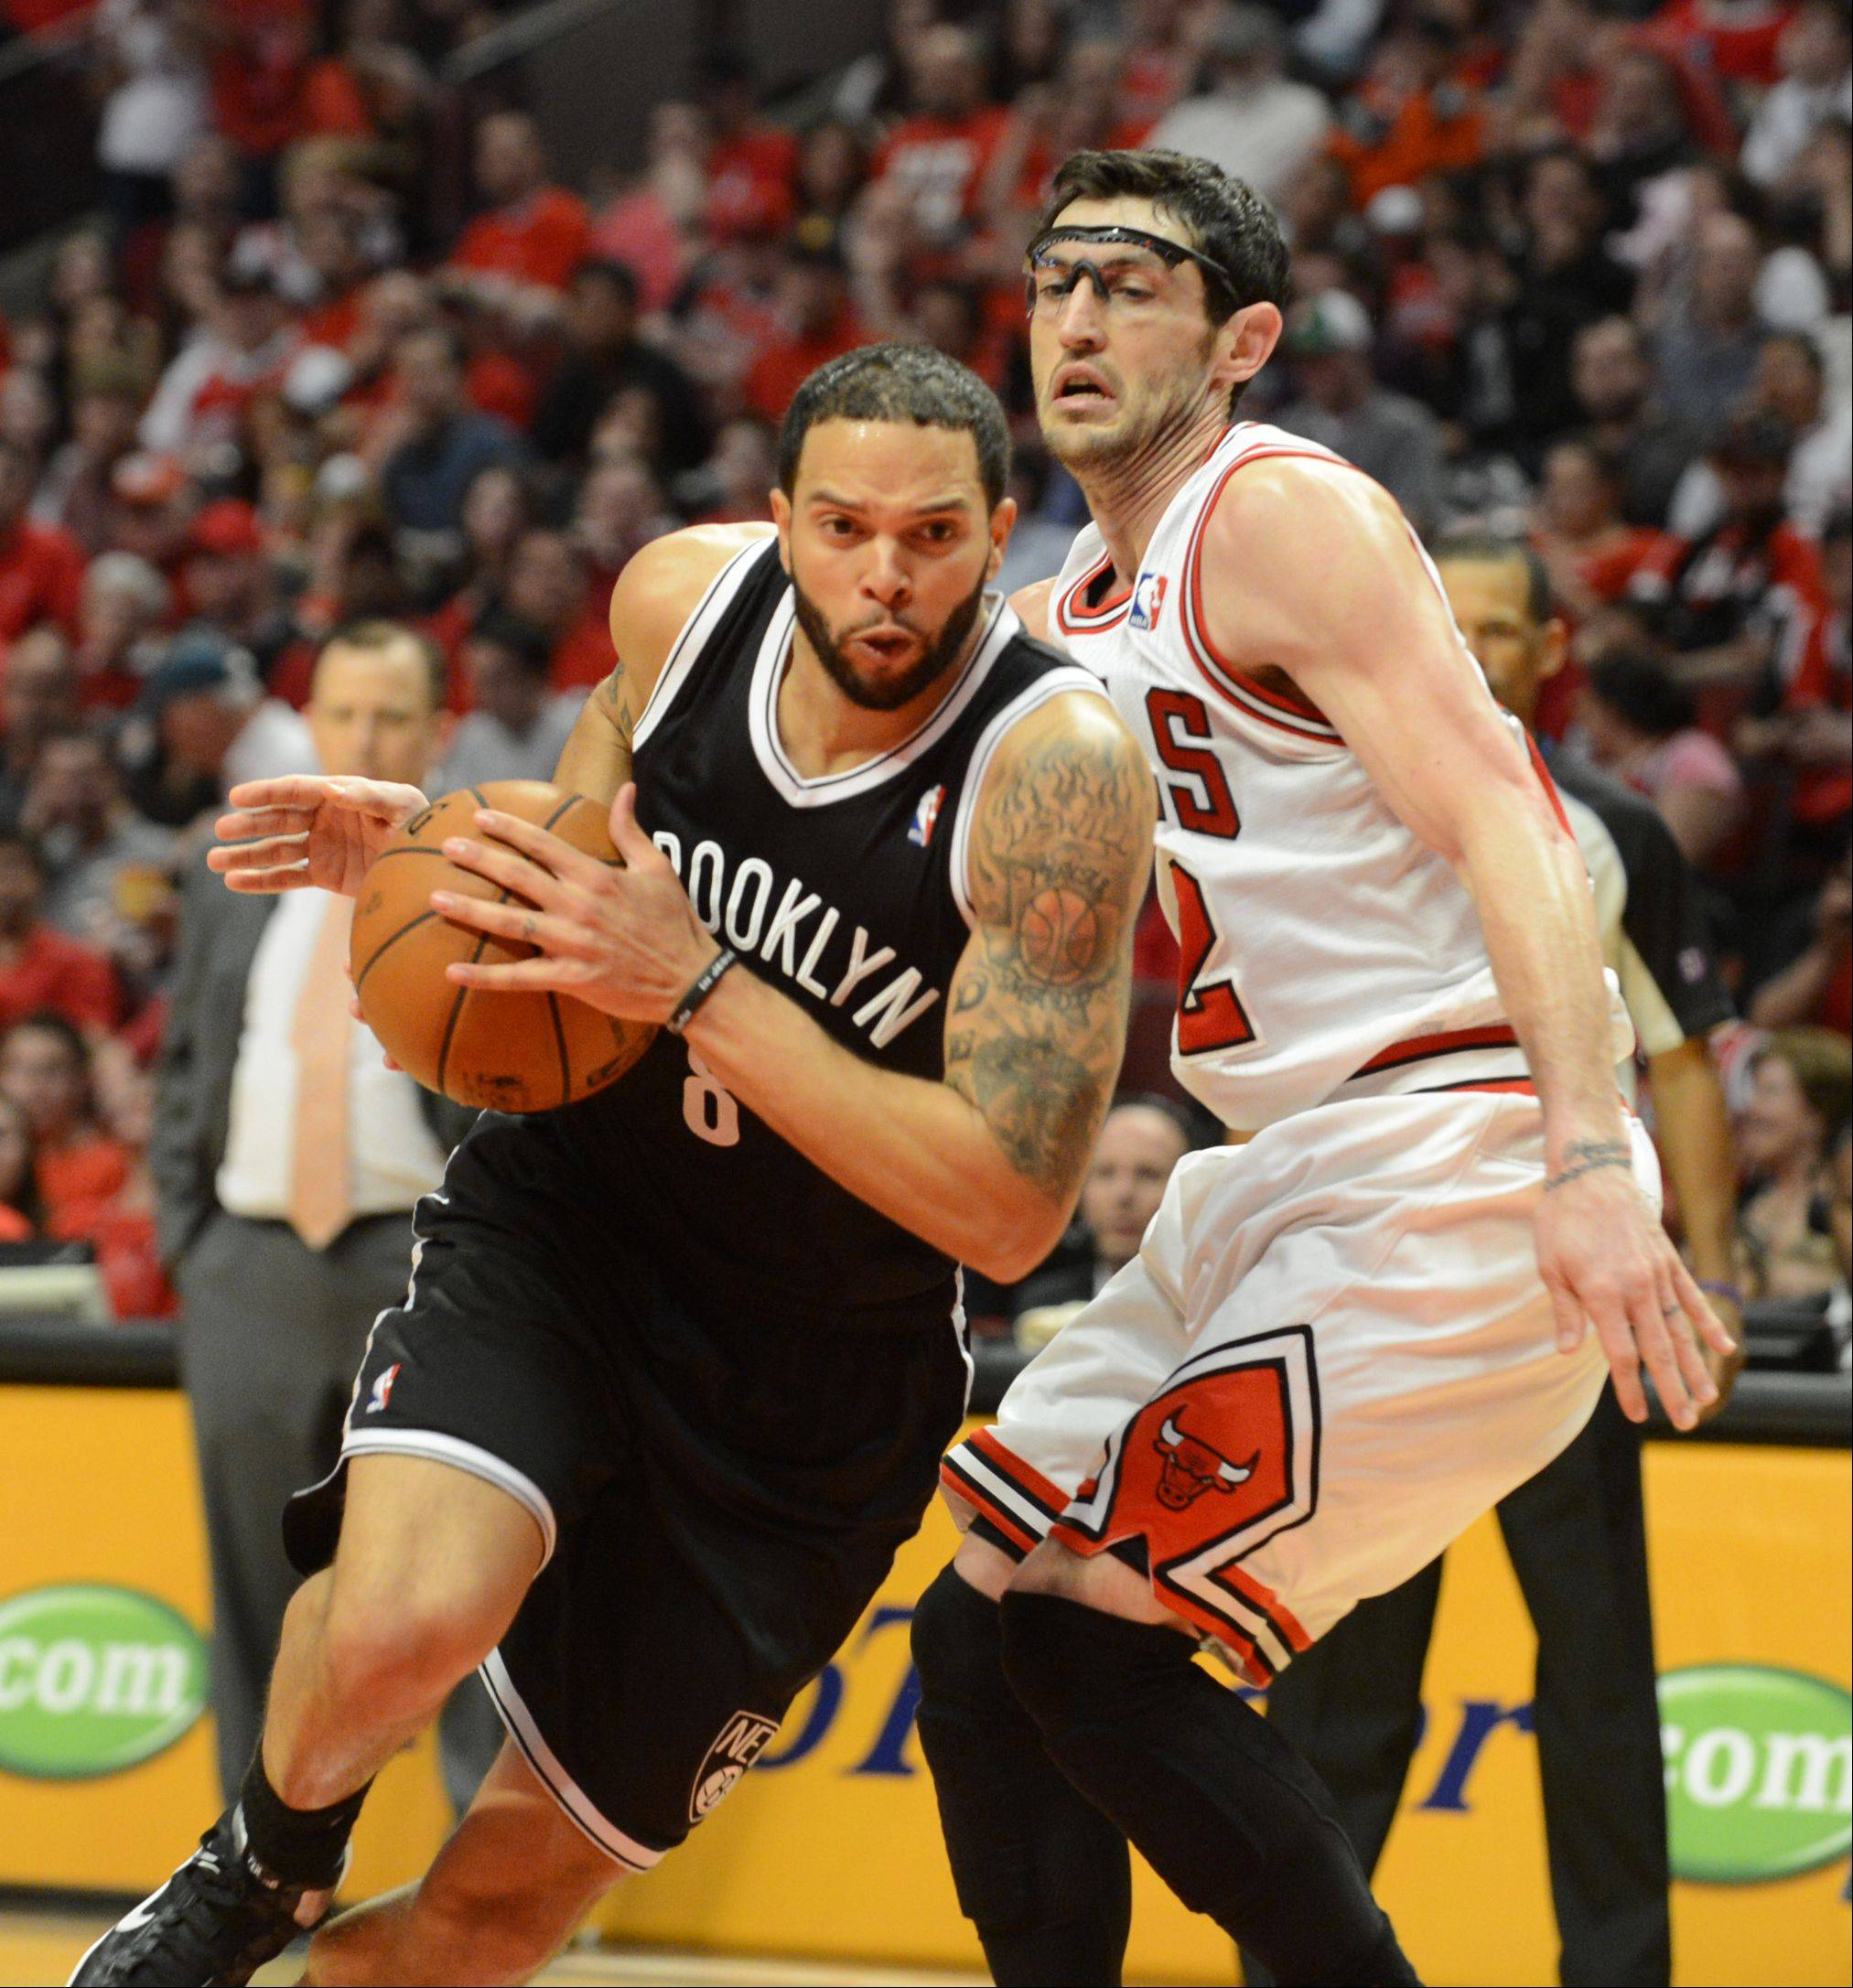 Brooklyn's Deron Williams drives to the basket past the Bulls Kirk Hinrich in the third quarter Saturday during game 4 of the first round playoff game against the Brooklyn Nets at the United Center. The Bulls won in triple overtime 142-134